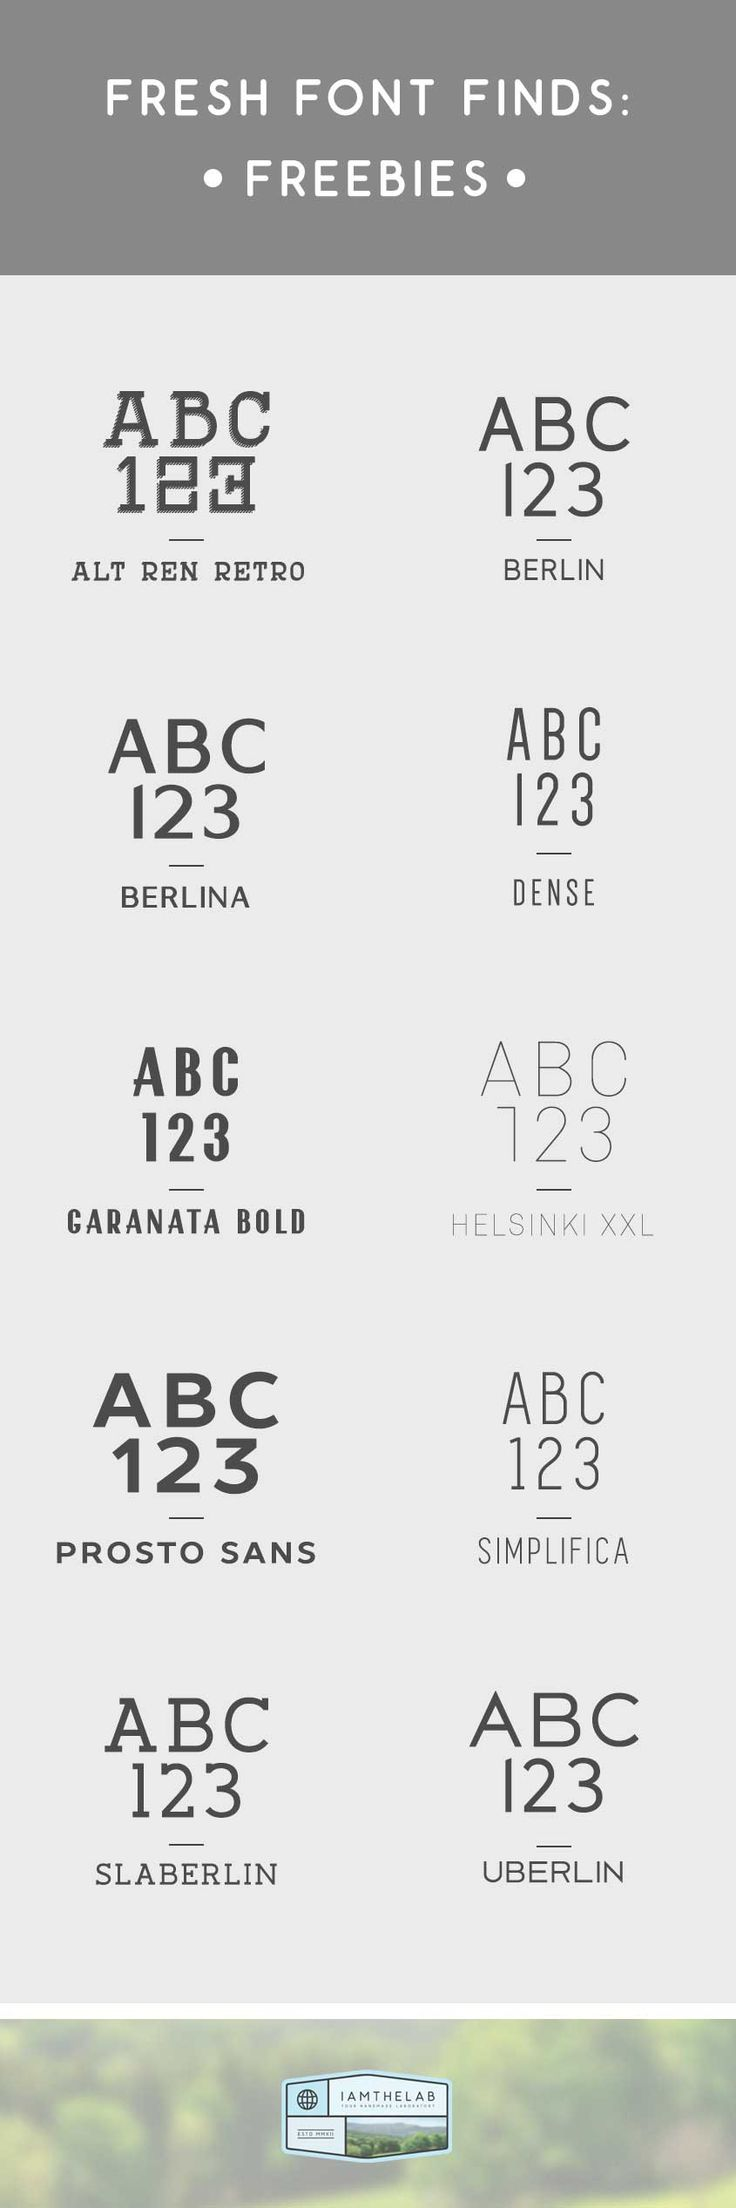 Fresh Font Finds: 10 Free Fonts. #freebies #fonts